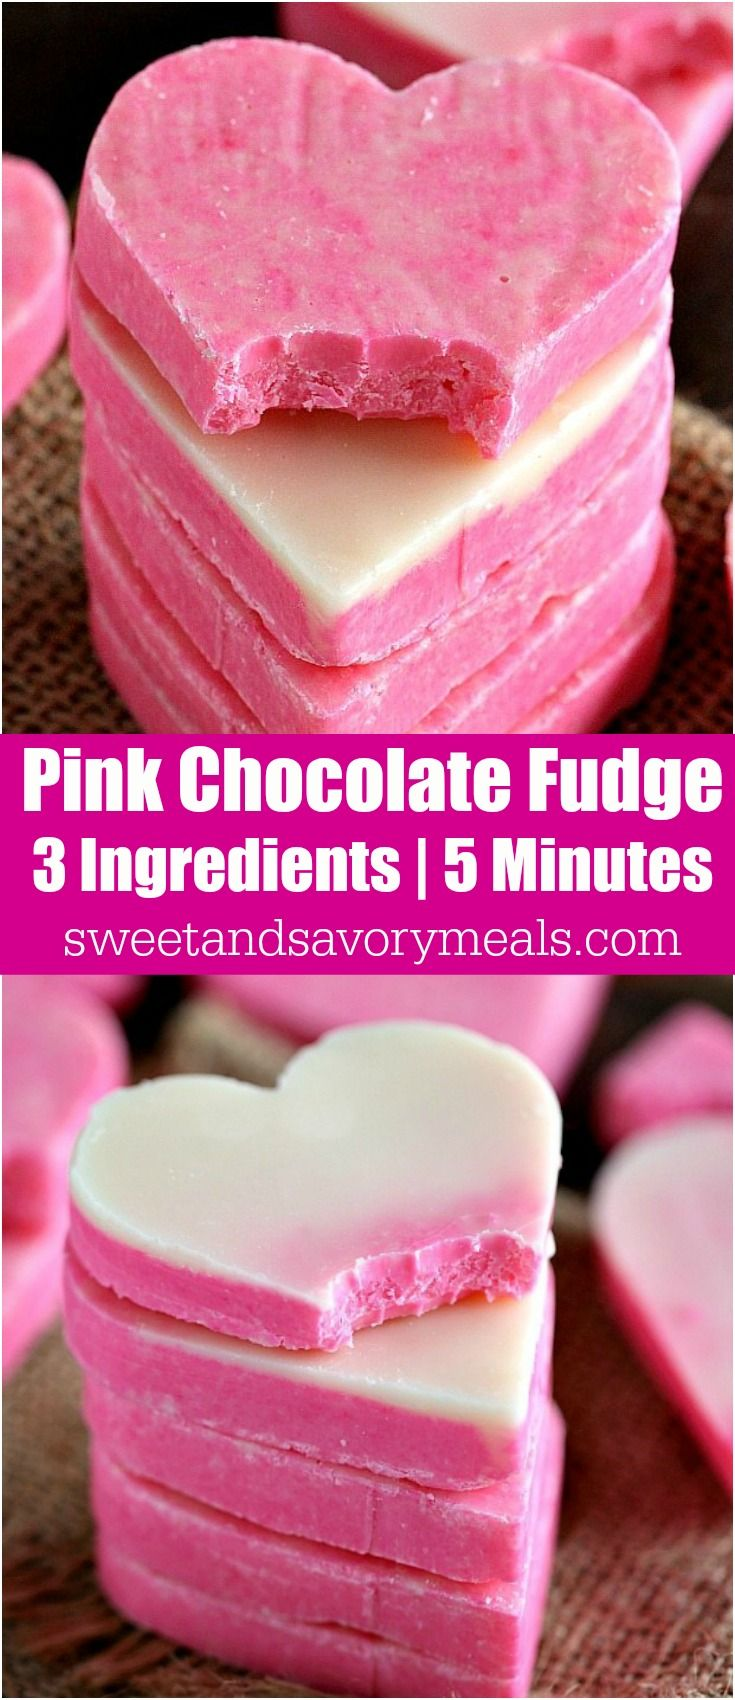 No Bake Pink White Chocolate Fudge is incredibly easy to make and very festive. 3 Ingredients, 5 minutes to get a creamy and irresistible fudge. #nobake #fudge #valentinesday #pink #heart